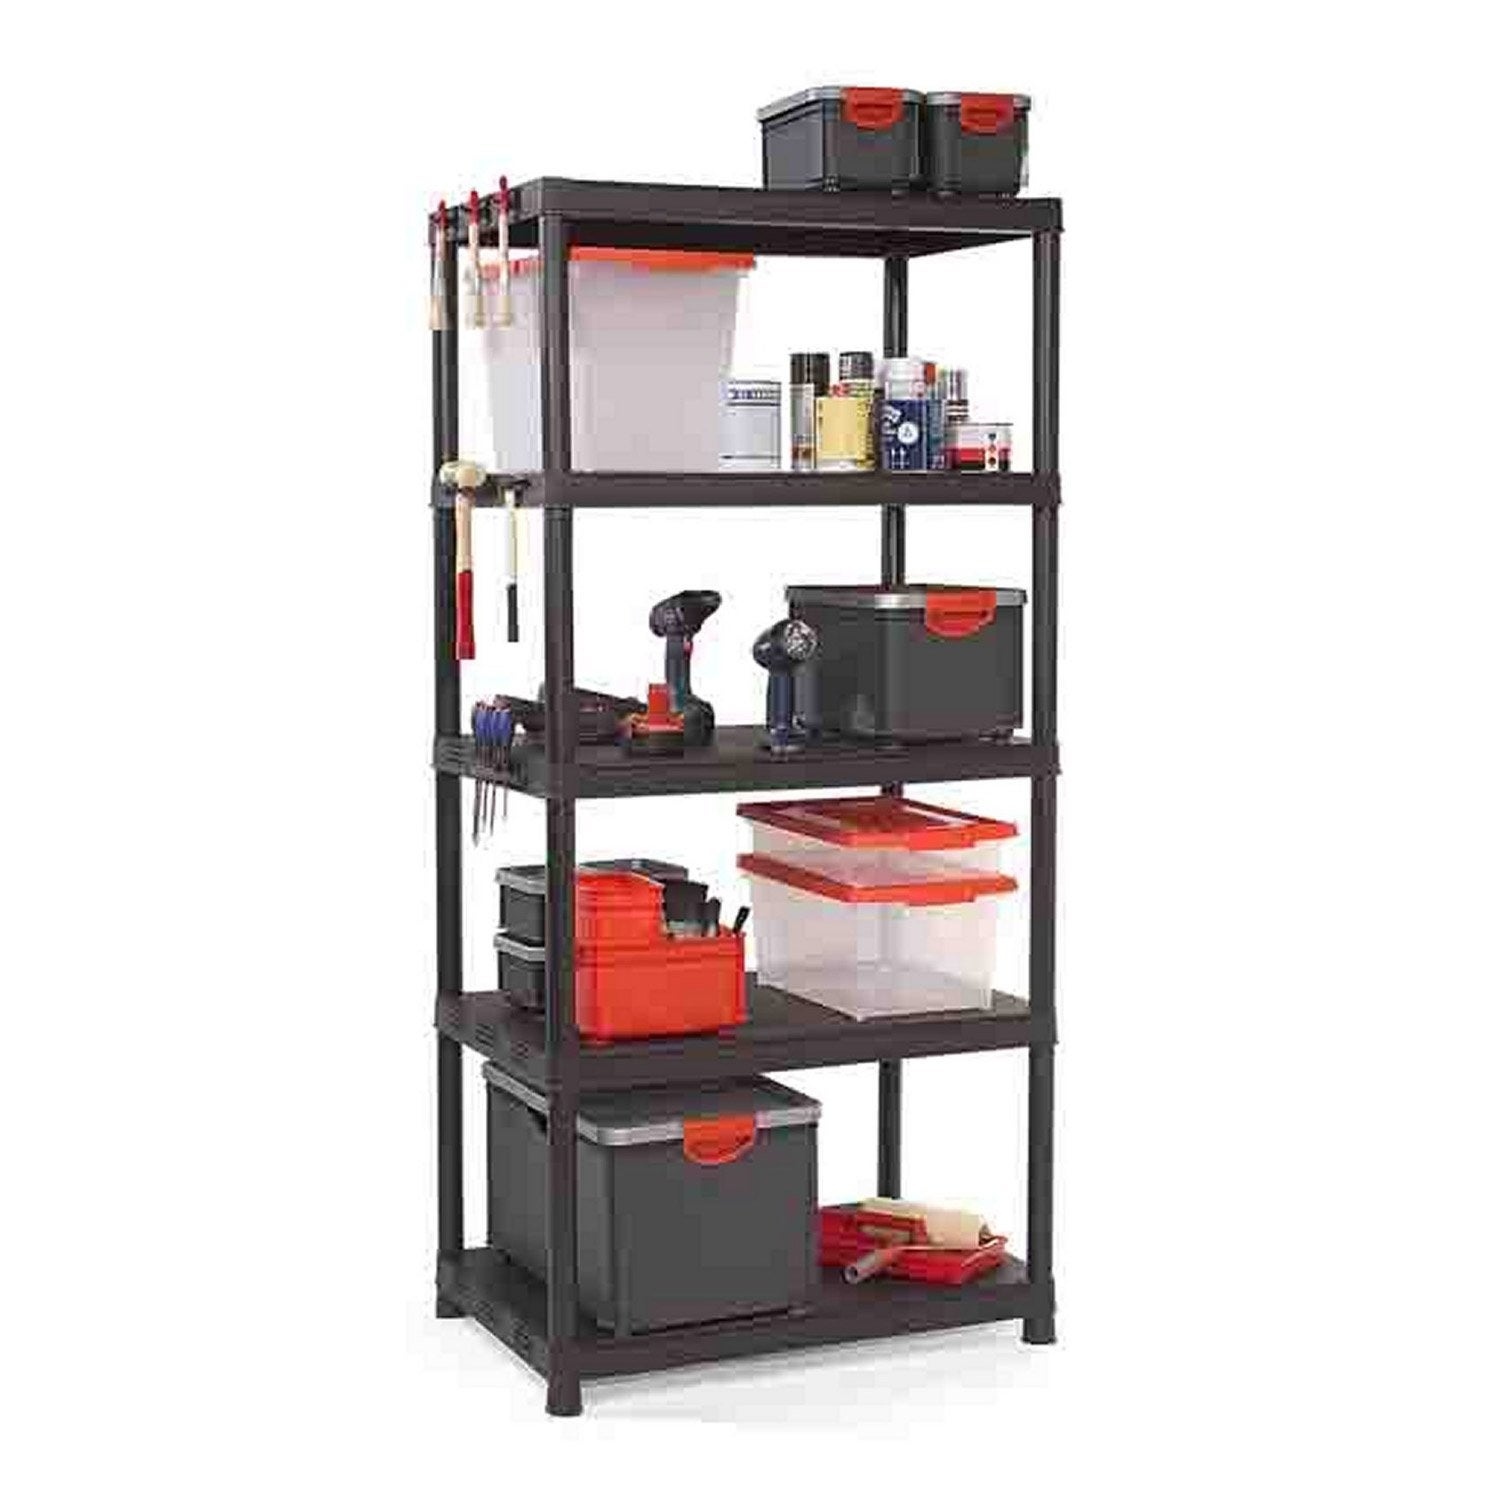 Etag re r sine kis 5 tablettes noir l90xh187xp60 cm - Etagere modulable leroy merlin ...